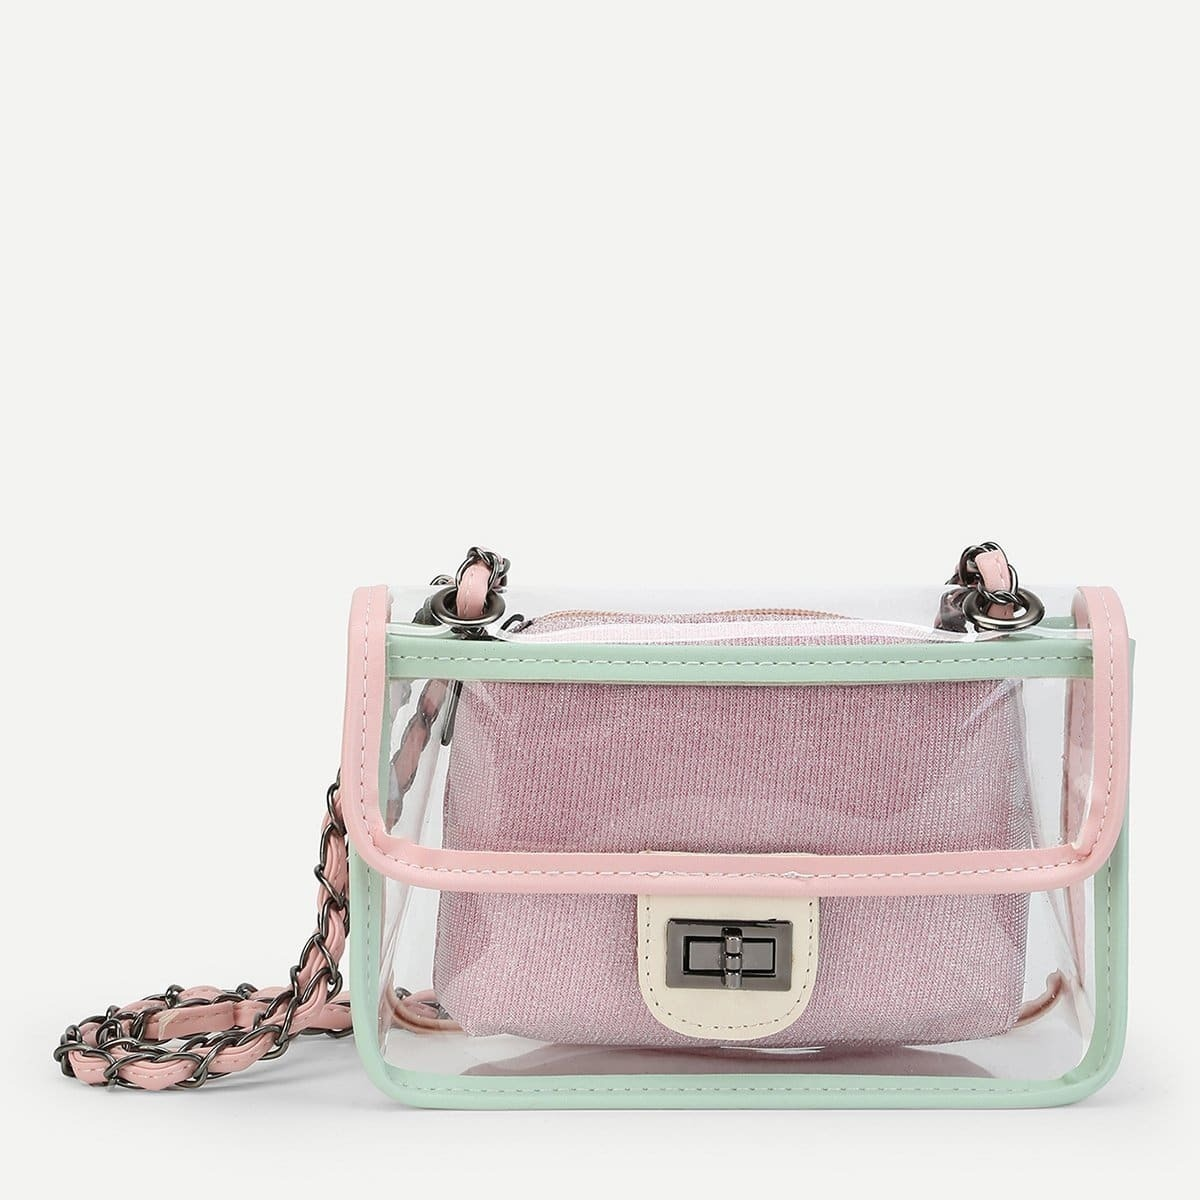 - Clear PVC Bag With Inner Pouch